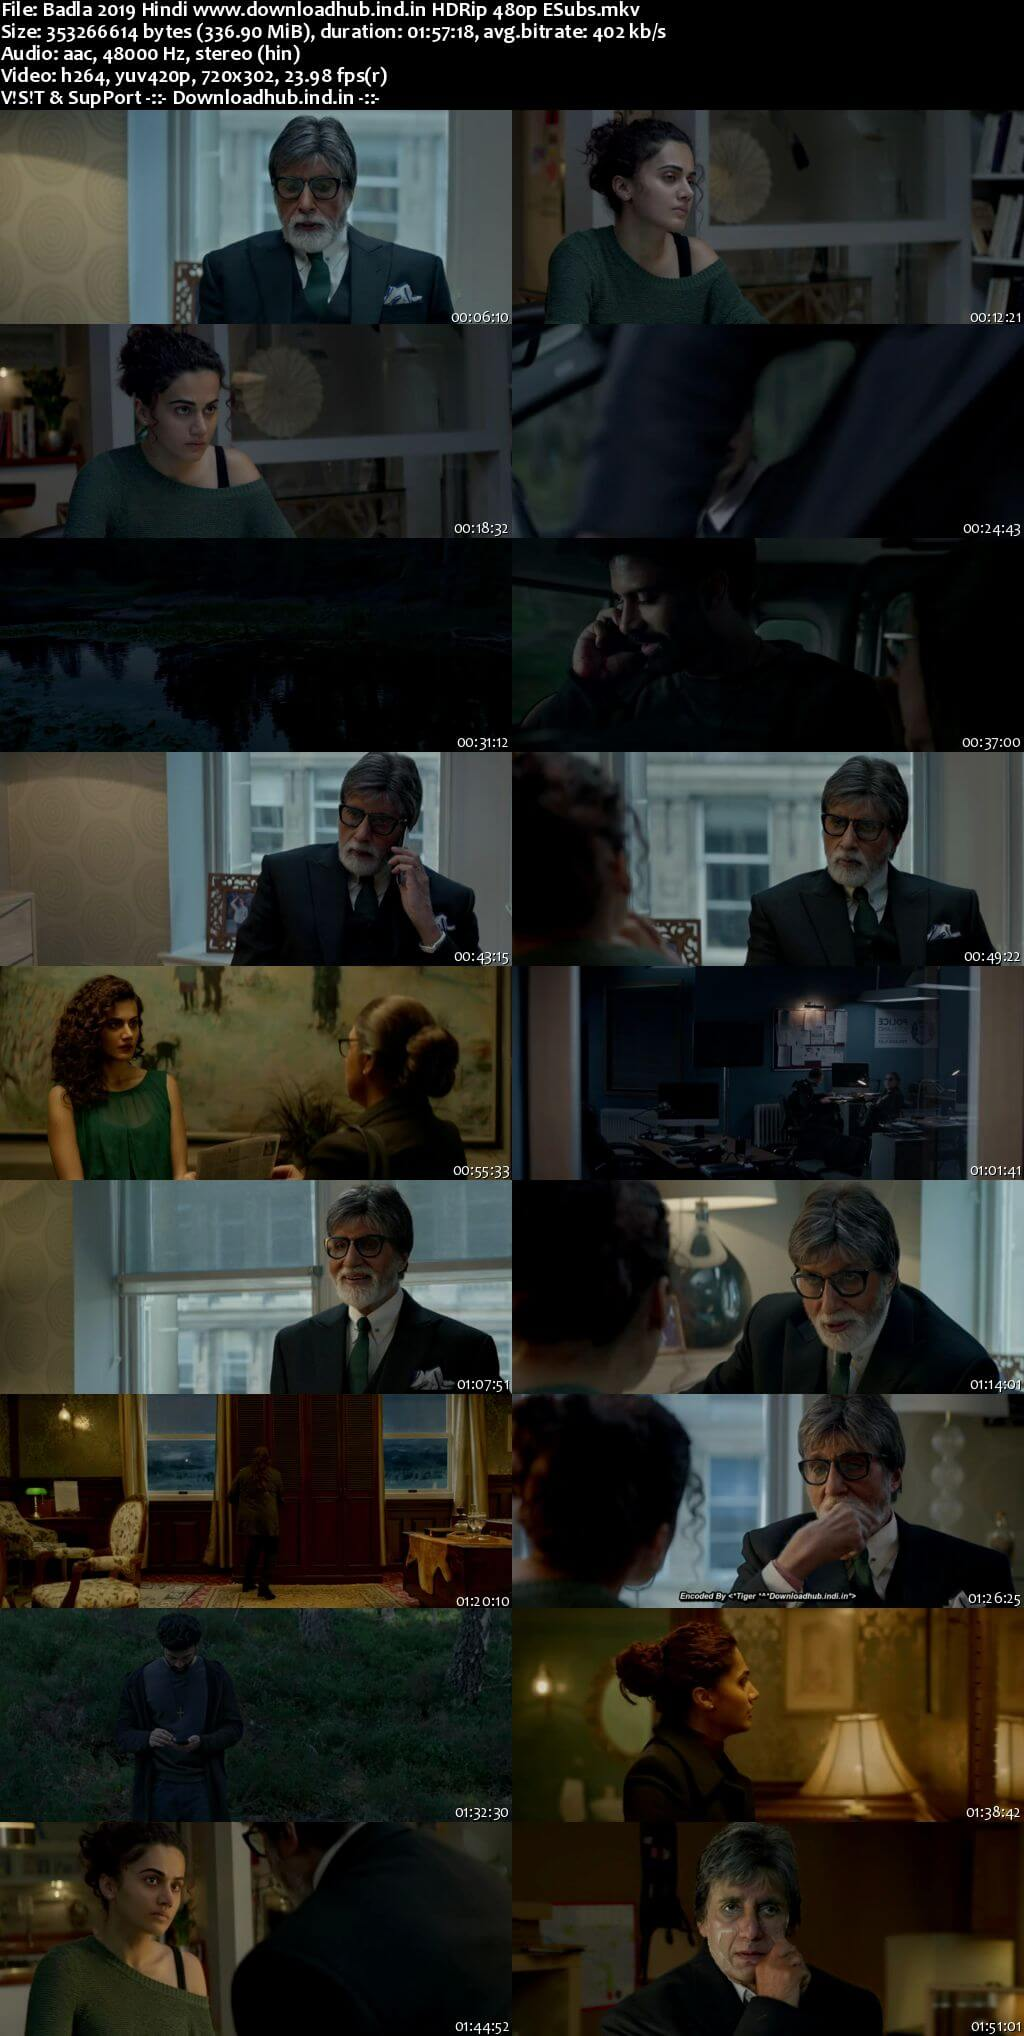 Badla 2019 Hindi 300MB HDRip 480p ESubs